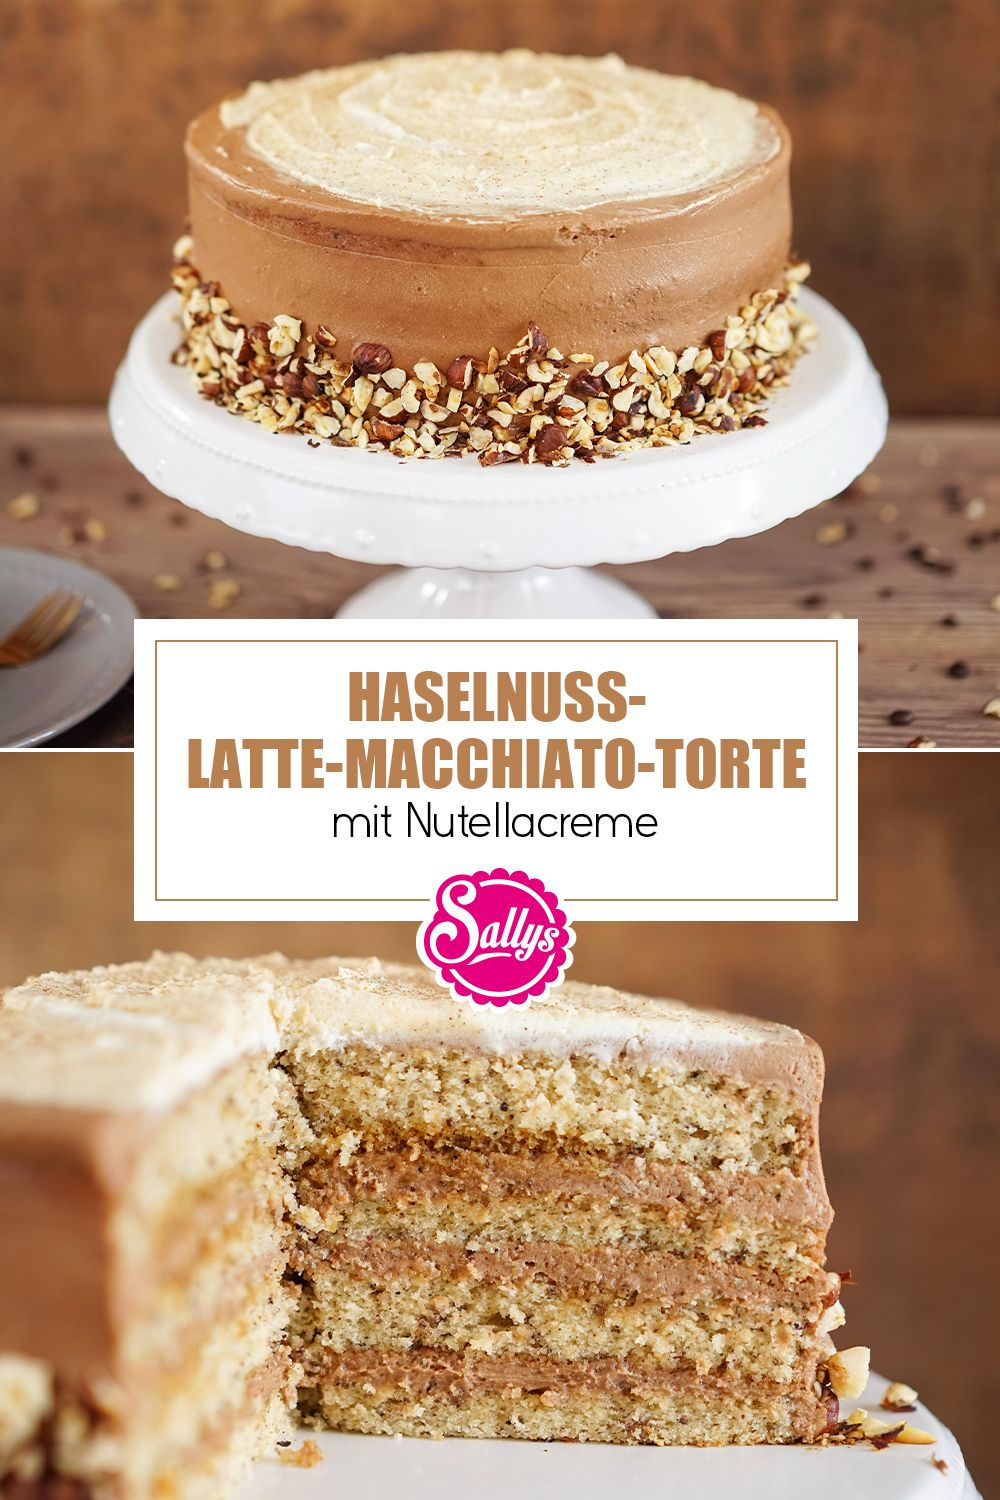 Photo of Haselnuss-Latte-Macchiato-Torte mit Nutellacreme / SALLYS WELT